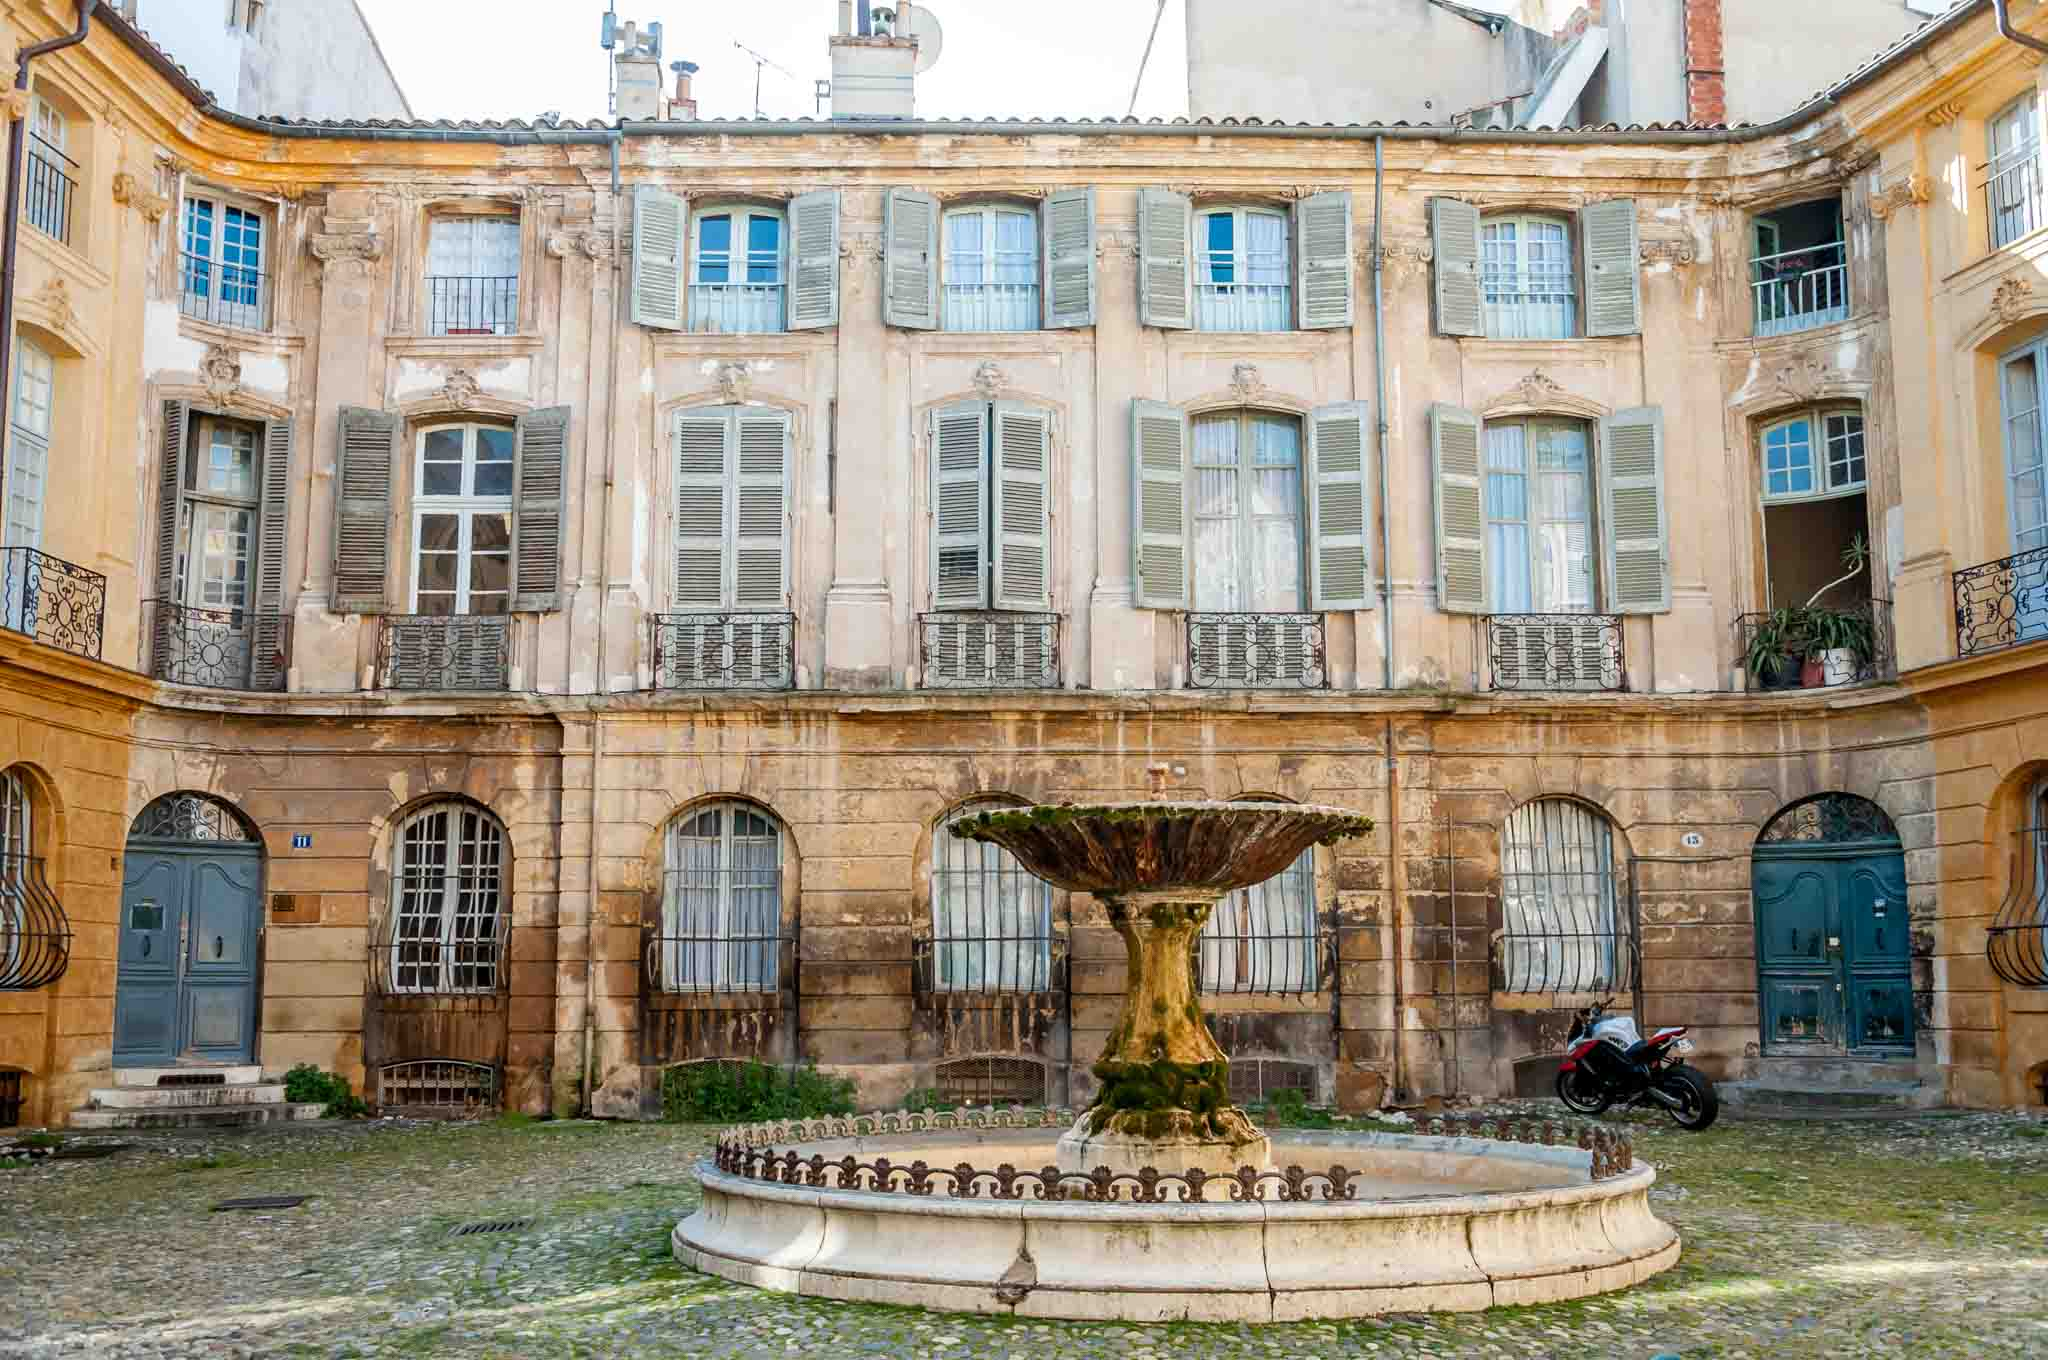 Fountain in a courtyard surrounded by buildings in Aix-en-Provence France